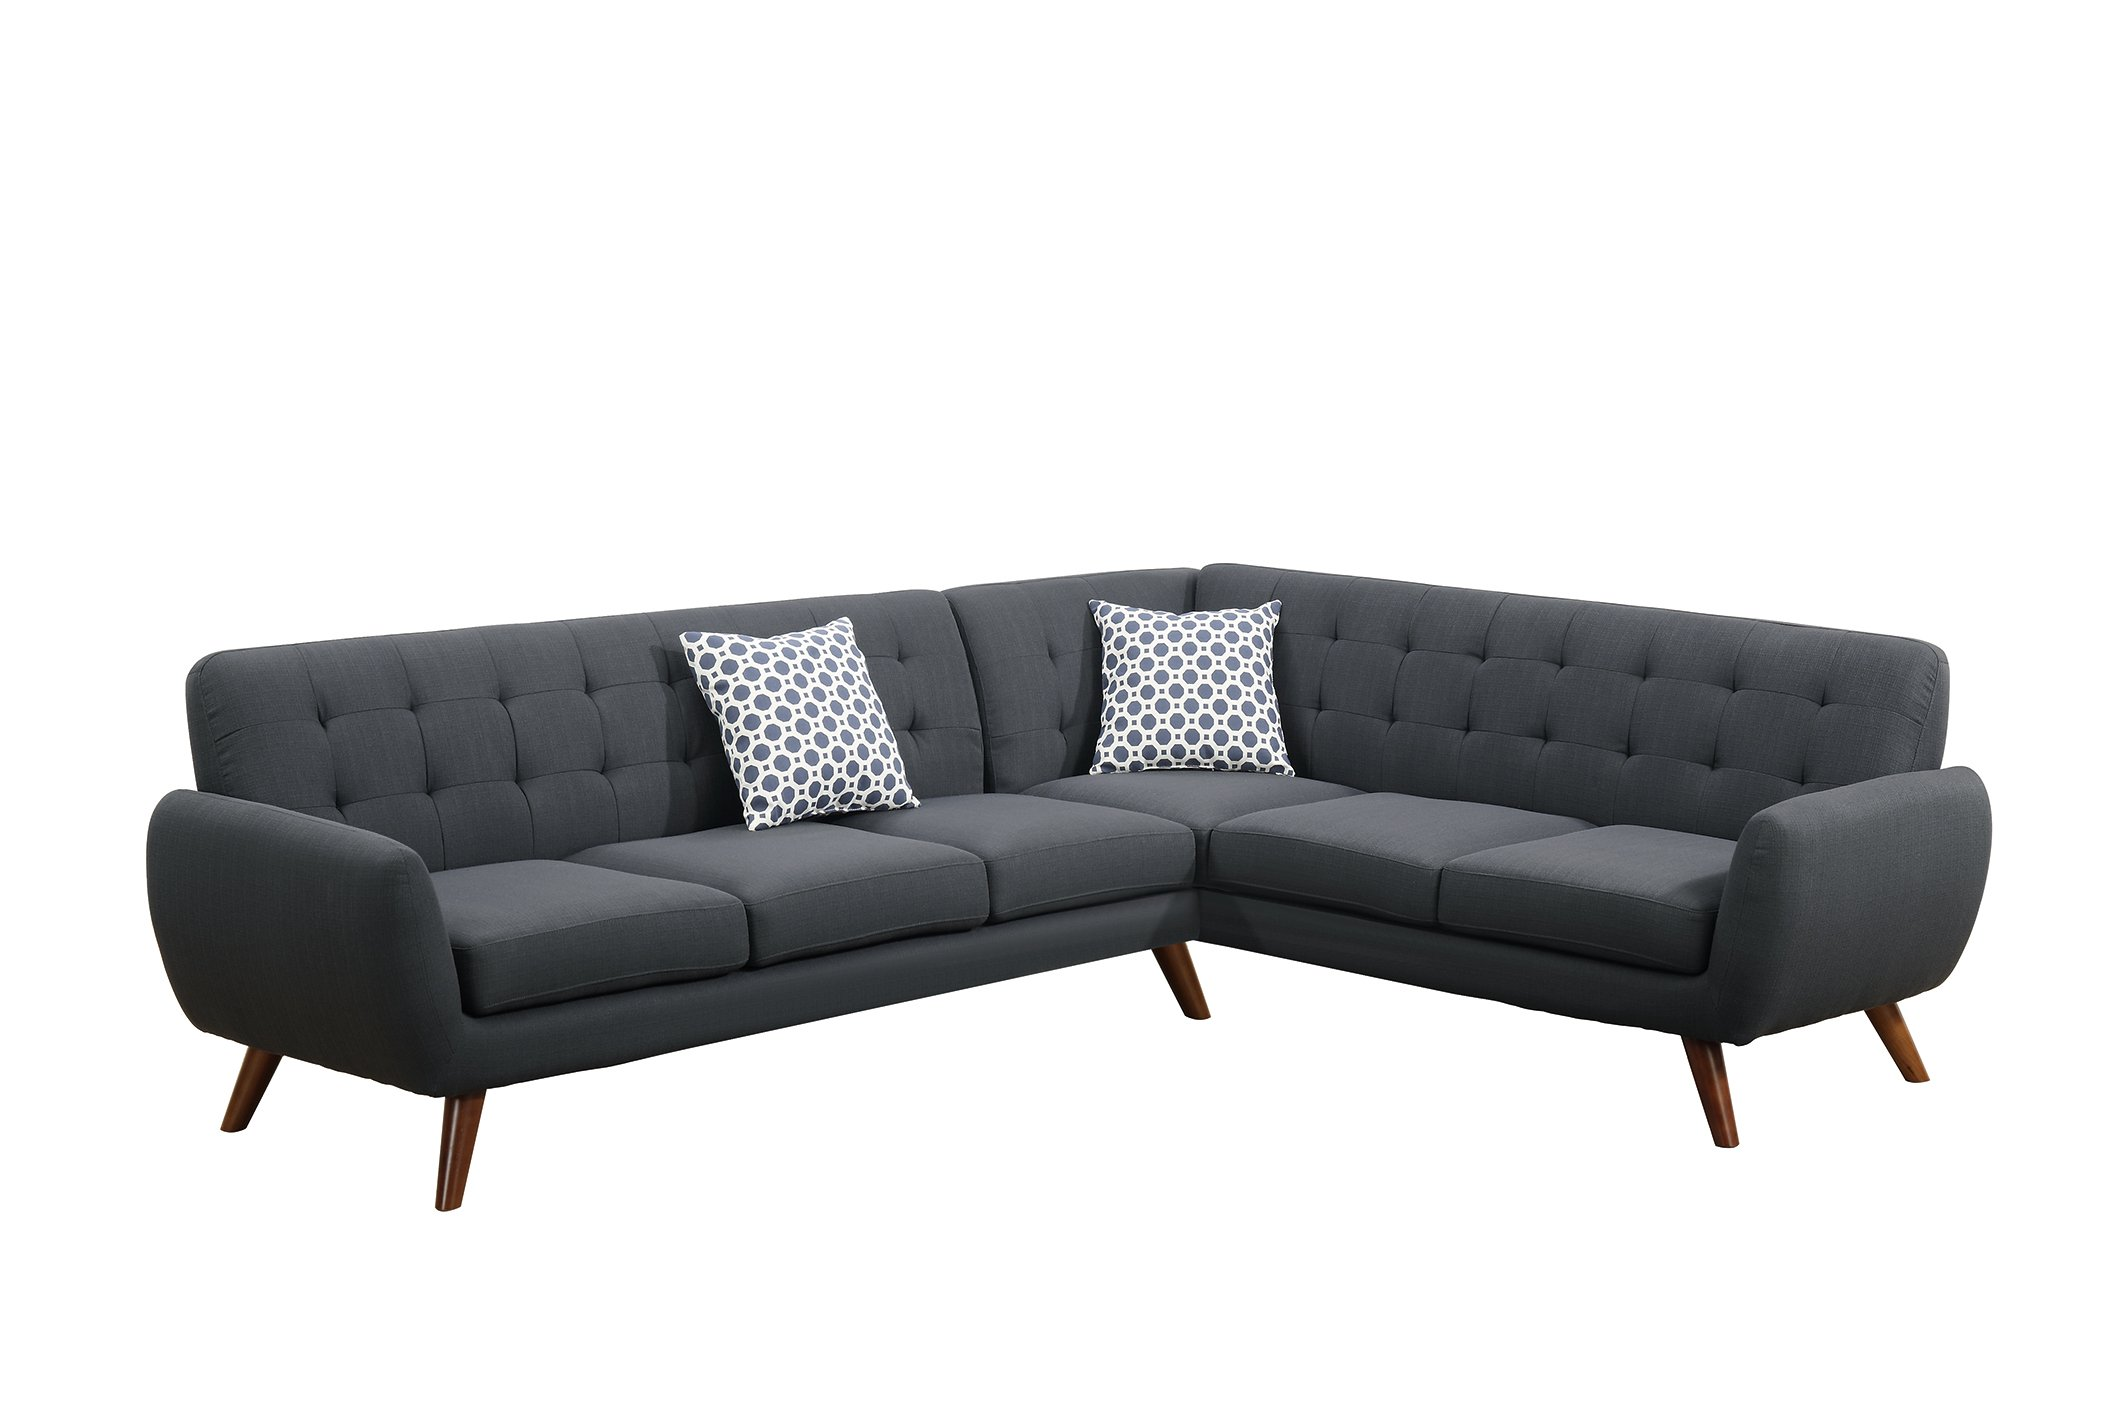 Poundex Bobkona Galiana Linen-Like Polyfabric SECTIONAL in Ash Black by Poundex